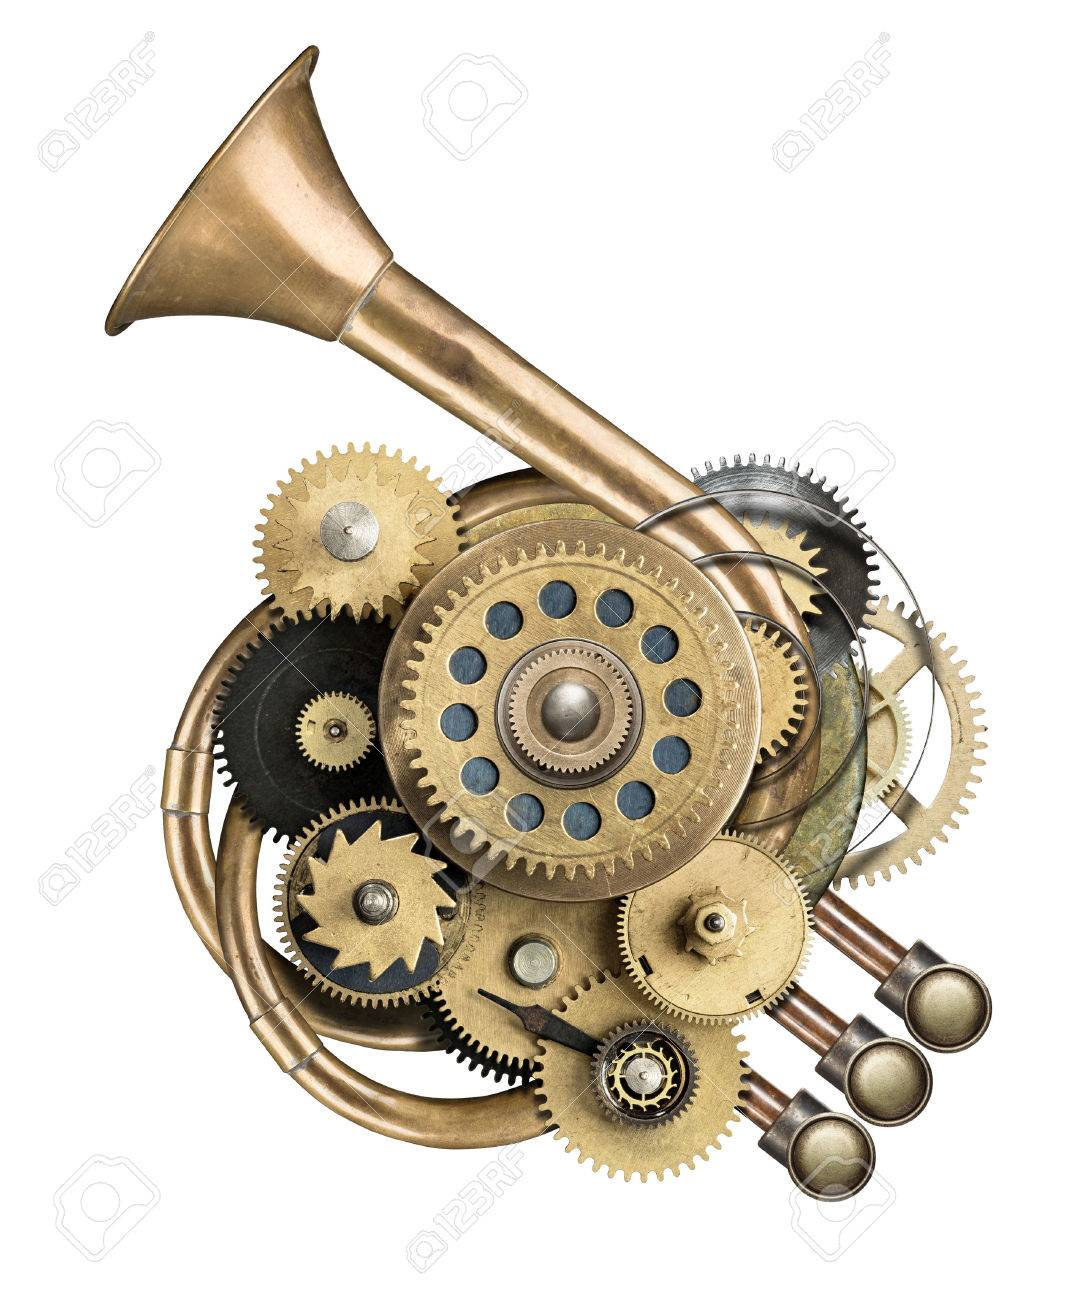 Stylized metal collage of mechanical device. Stock Photo - 31206948